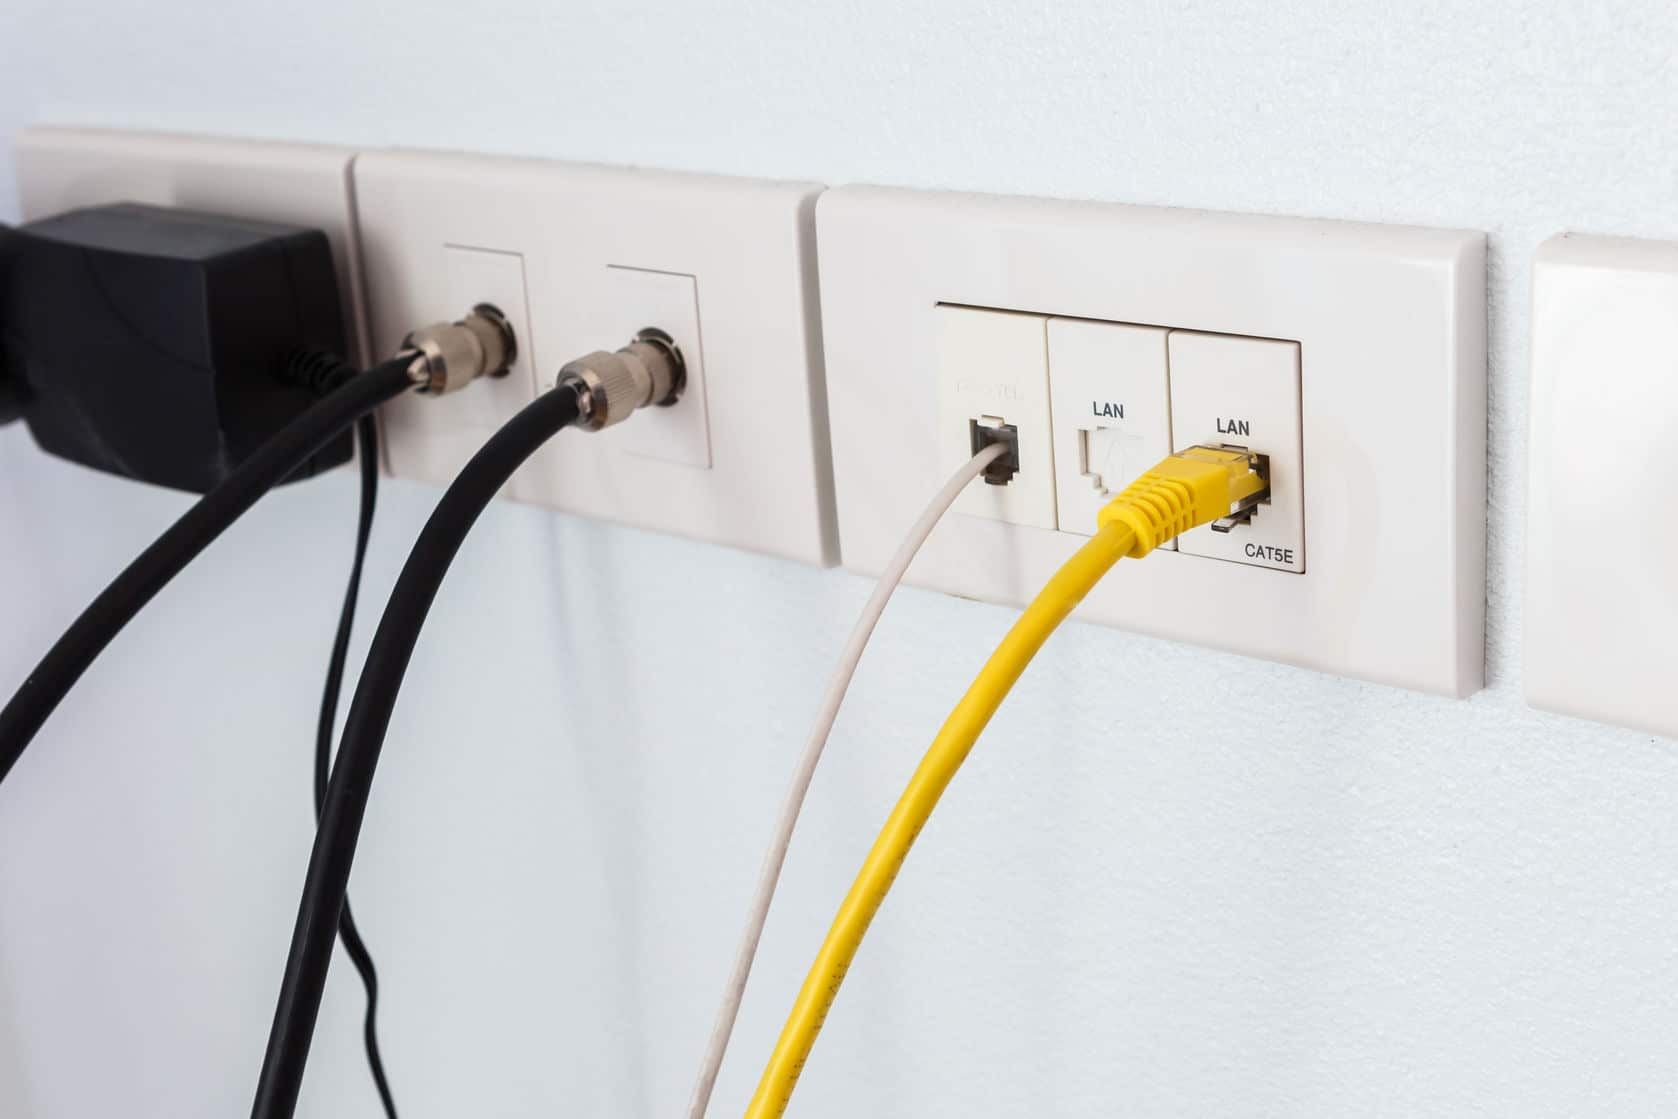 rj45 wiring diagram socket telstra home phone data cabling line fault detection sunshine coast